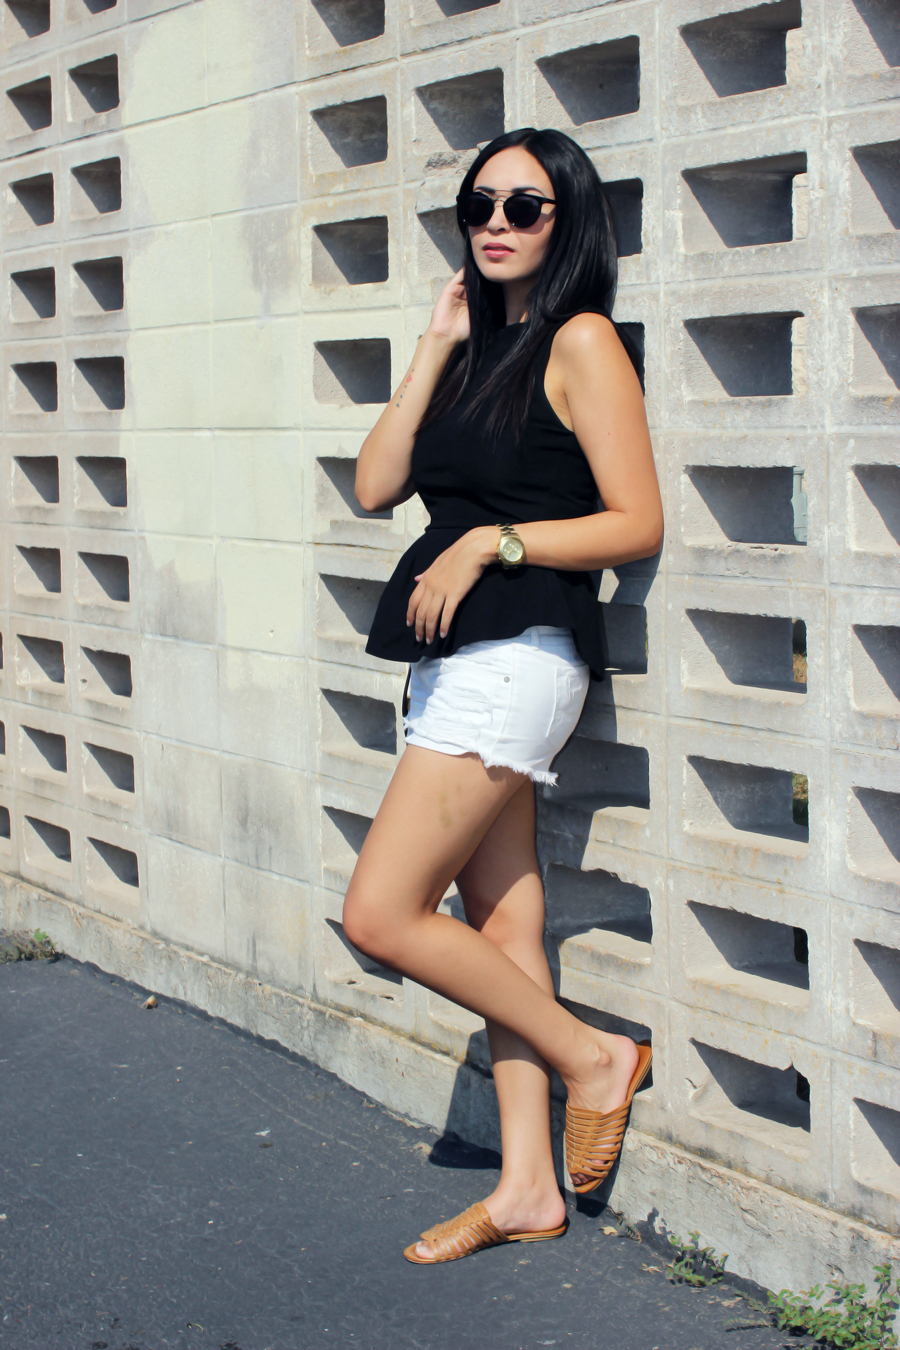 AUSTIN-STYLE-BLOG-PEPLUM-SANDALS-FIXIN-TO-THRILL-NORDSTROM-TRENDS-FW15-SUMMER-TRENDY-CHIC-GLAM-FASHION-OUTFIT-TEXAS-BLACK-HAIR-4